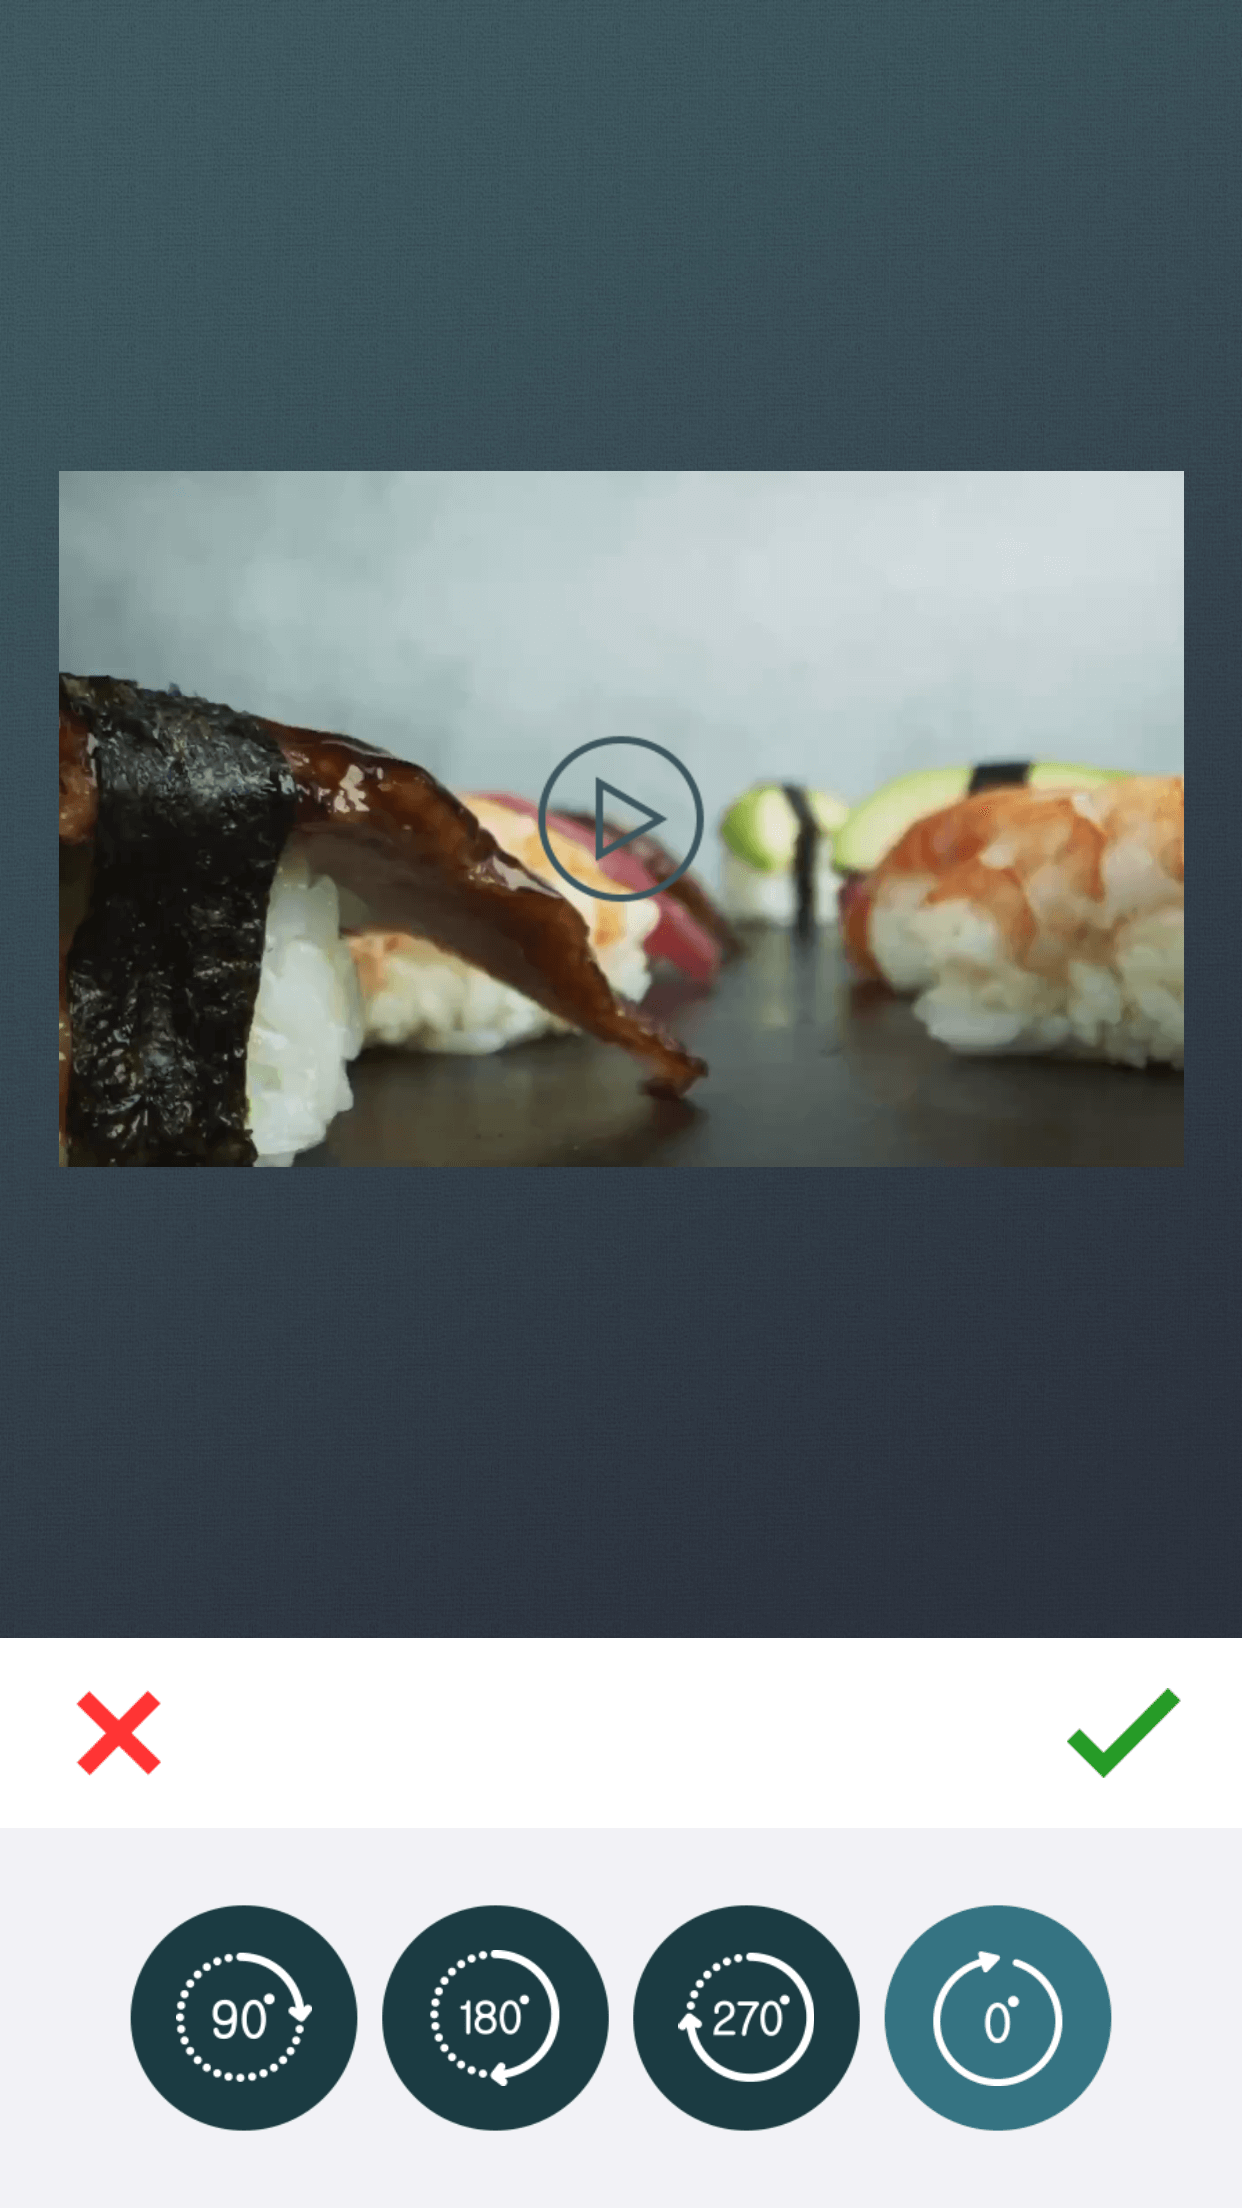 Rotate feature of zShot app.